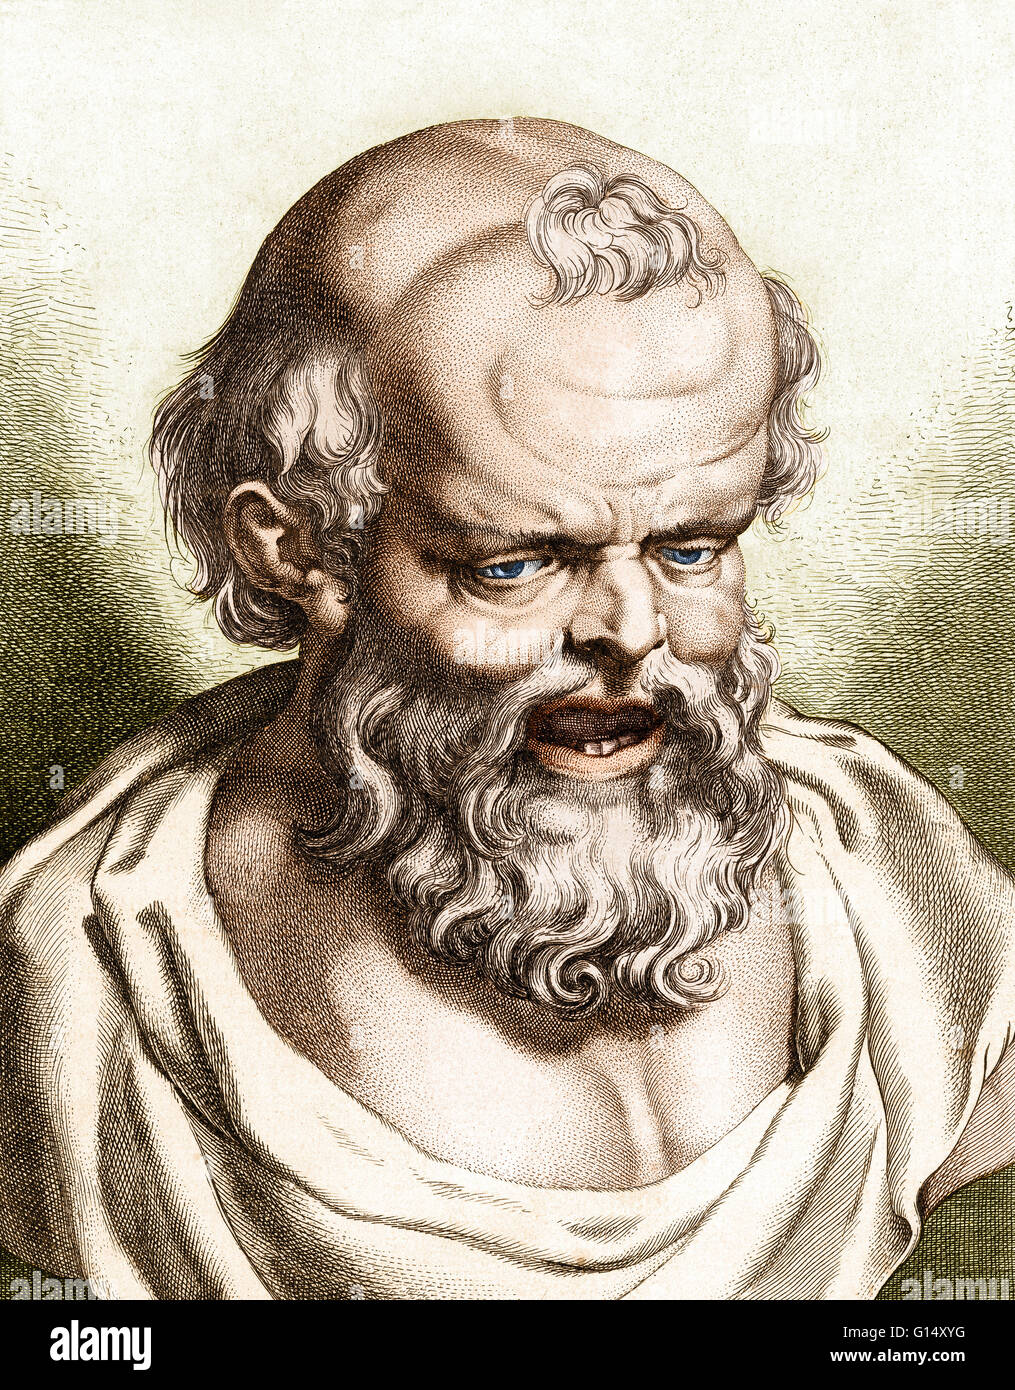 Democritus of Abdera (472/457-370/360 BC) pre-Socratic Greek philosopher and the father of atomic theory. Democritus - Stock Image